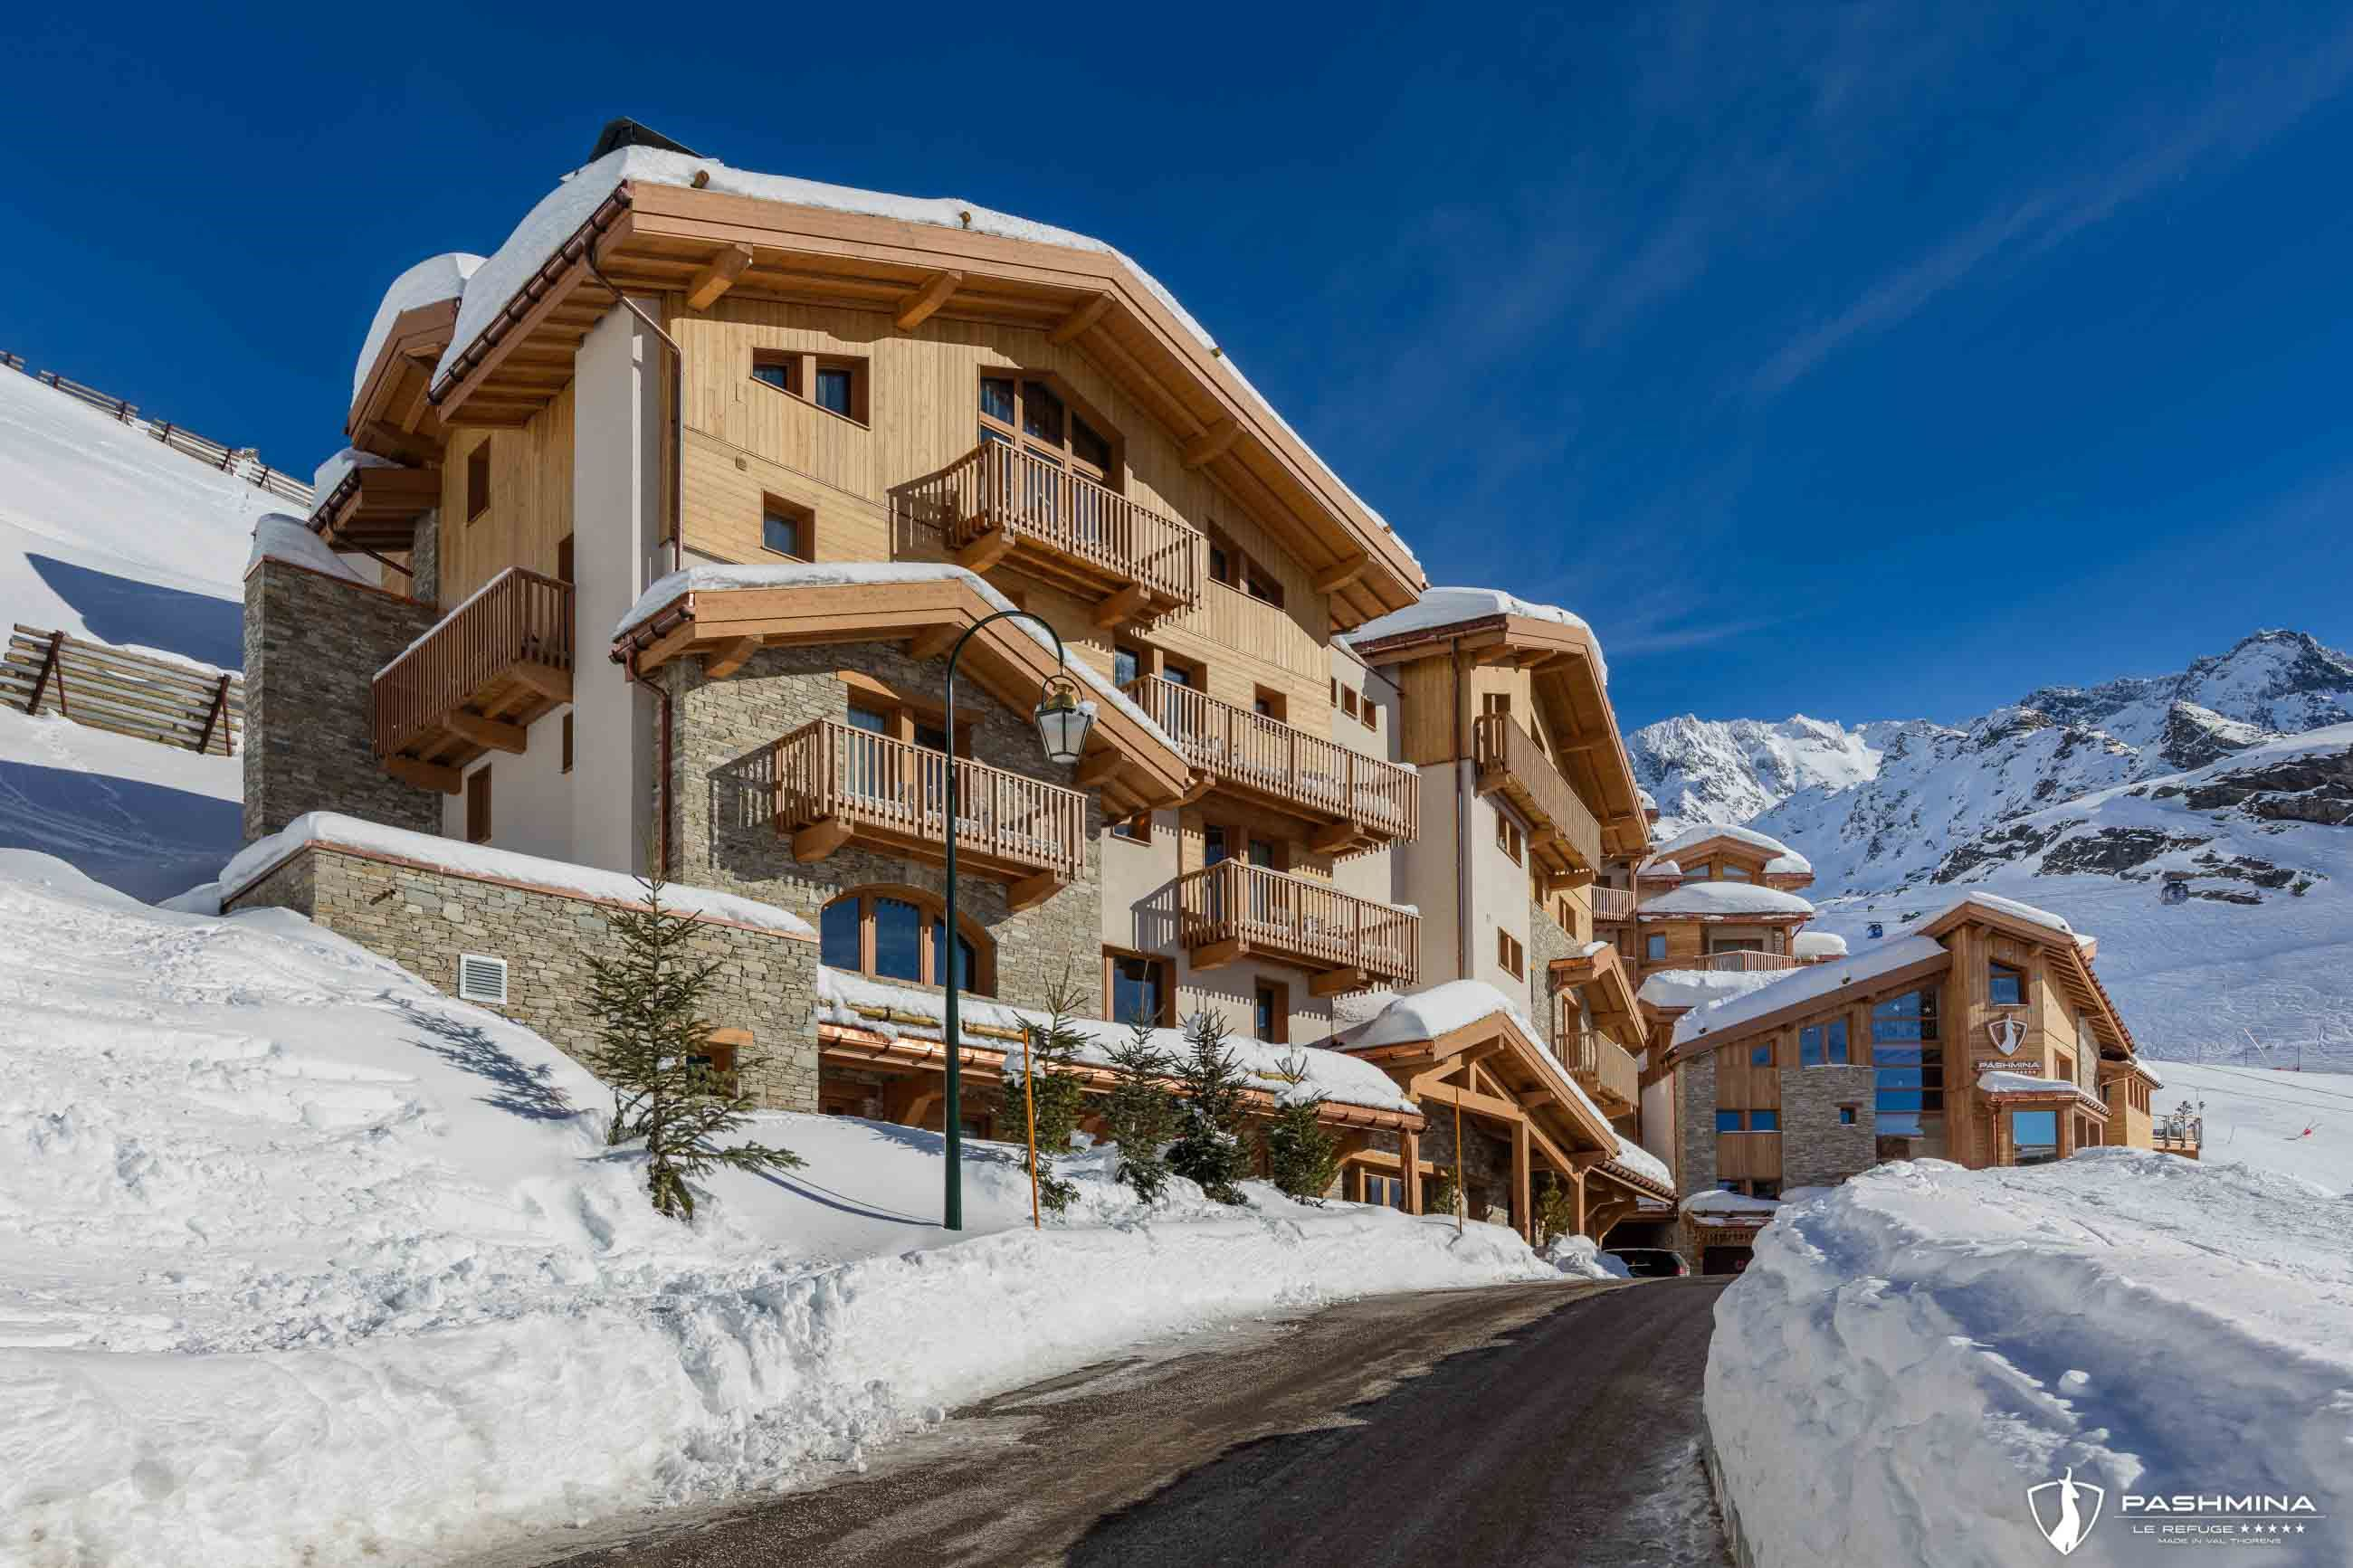 CHALET PASHMINA - LE REFUGE - MADE IN VAL THORENS - NEW ♥♥♥